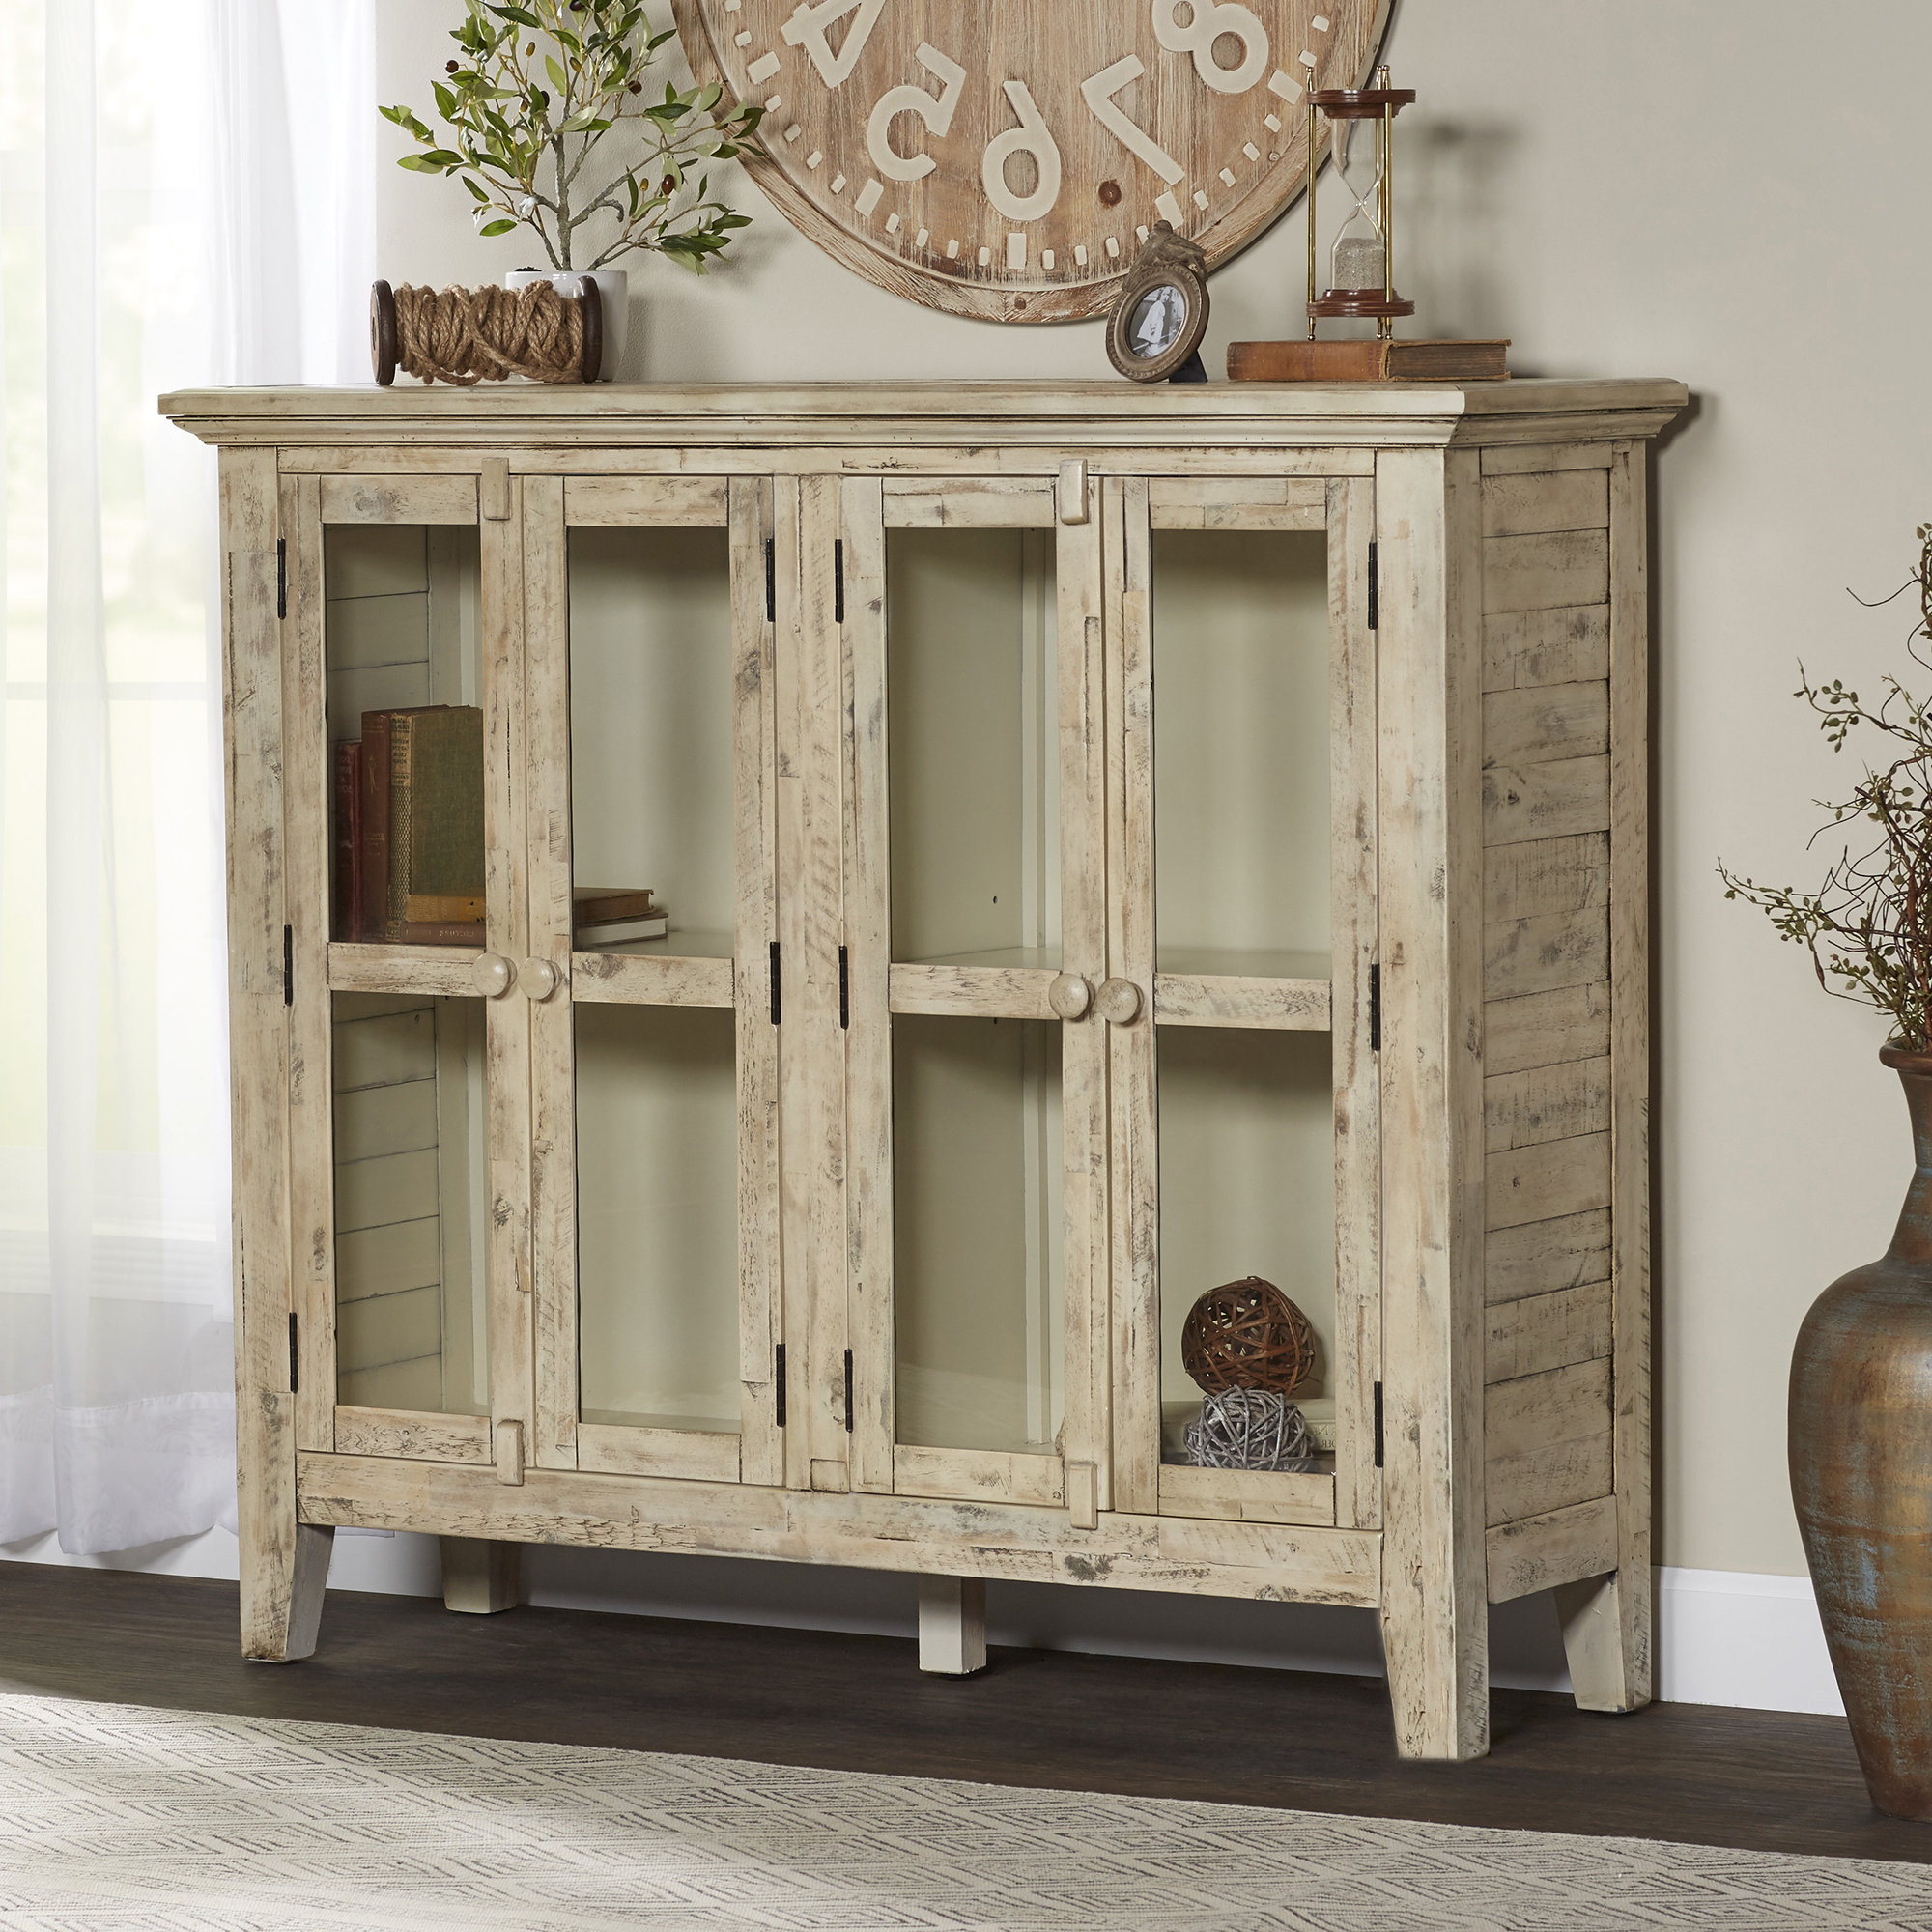 Eau Claire 4 Door Accent Cabinet In Widely Used Eau Claire 6 Door Accent Cabinets (Gallery 6 of 20)